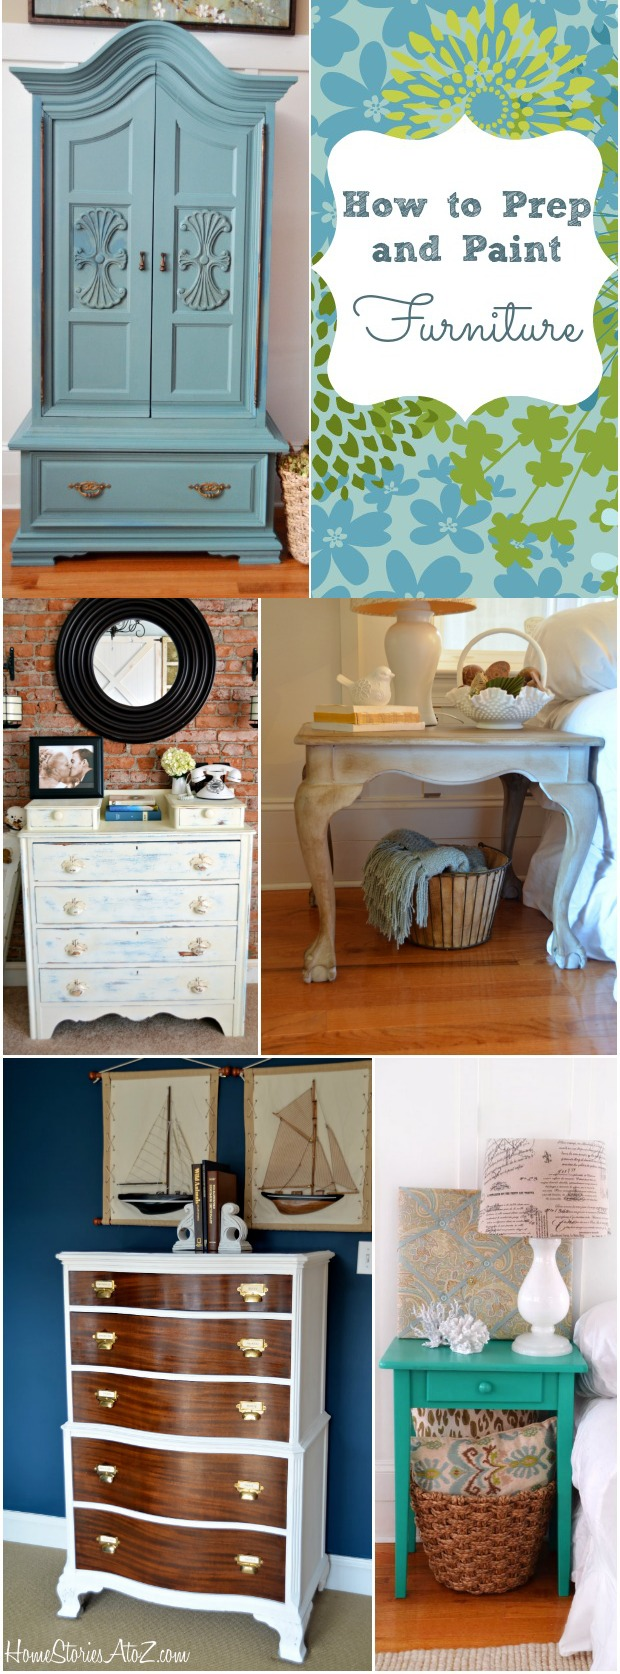 How to paint a vintage buffet home stories a to z - Painting Furniture